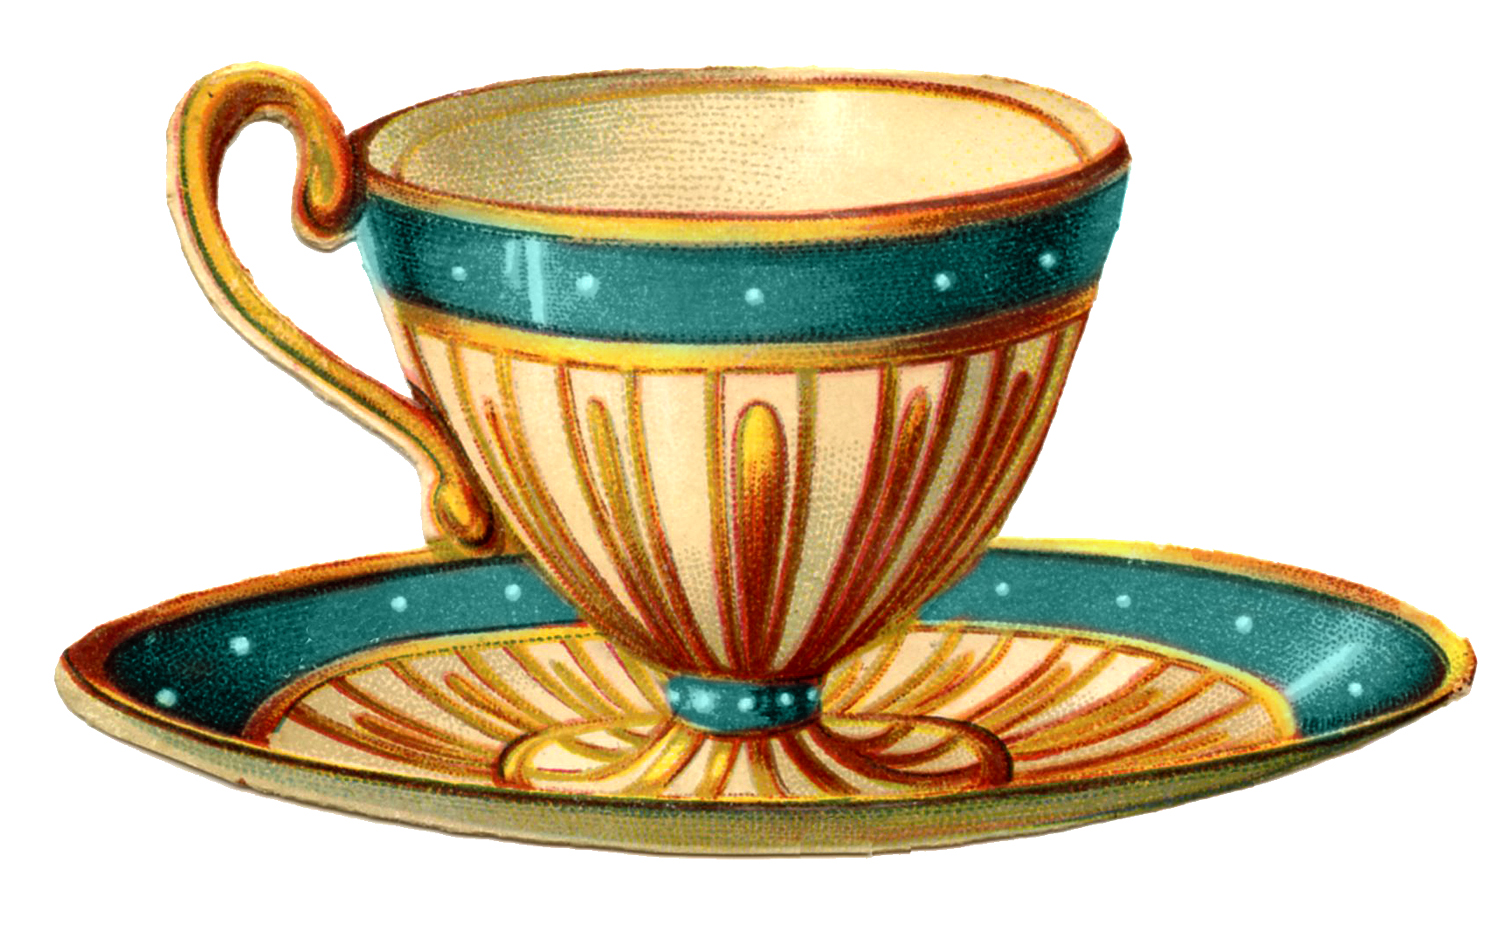 Vintage Cup Of Tea Clipart.